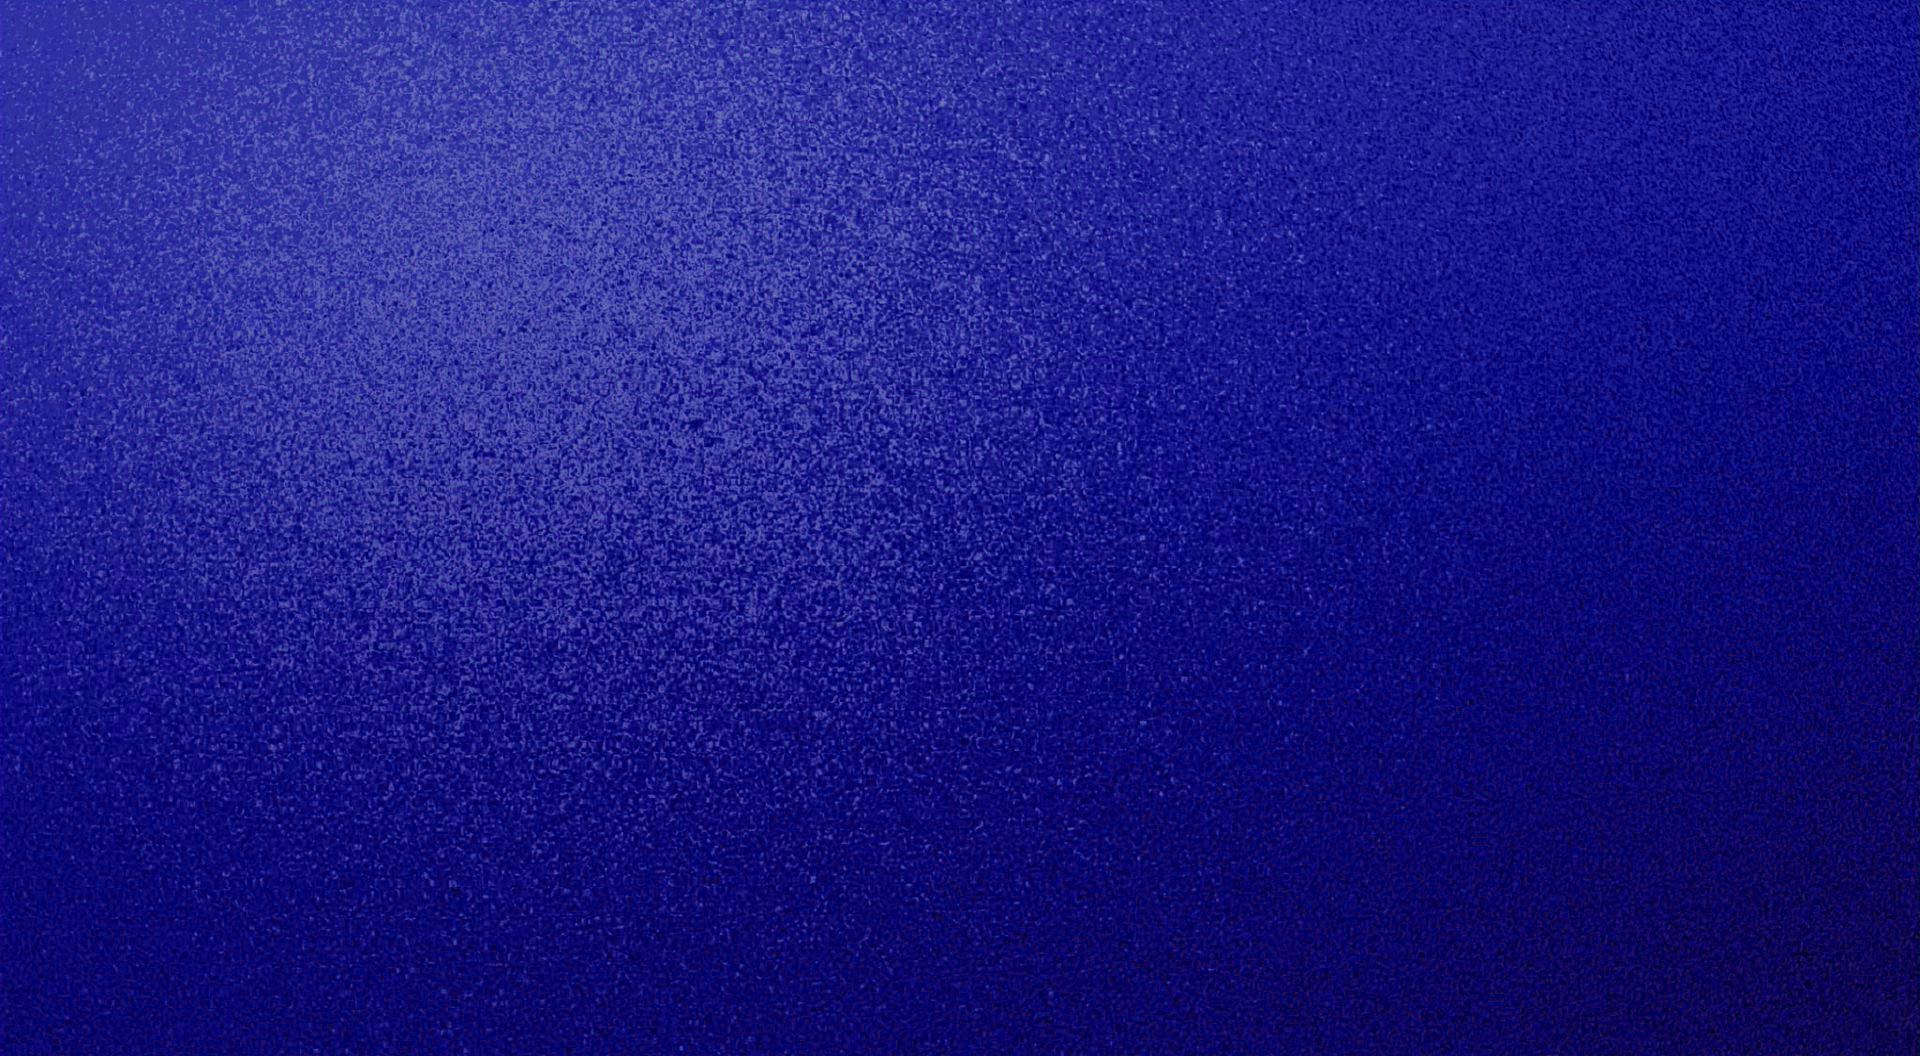 Dark Blue Royal Textured Background Wallpaper Click Picture For High Resolution Hd